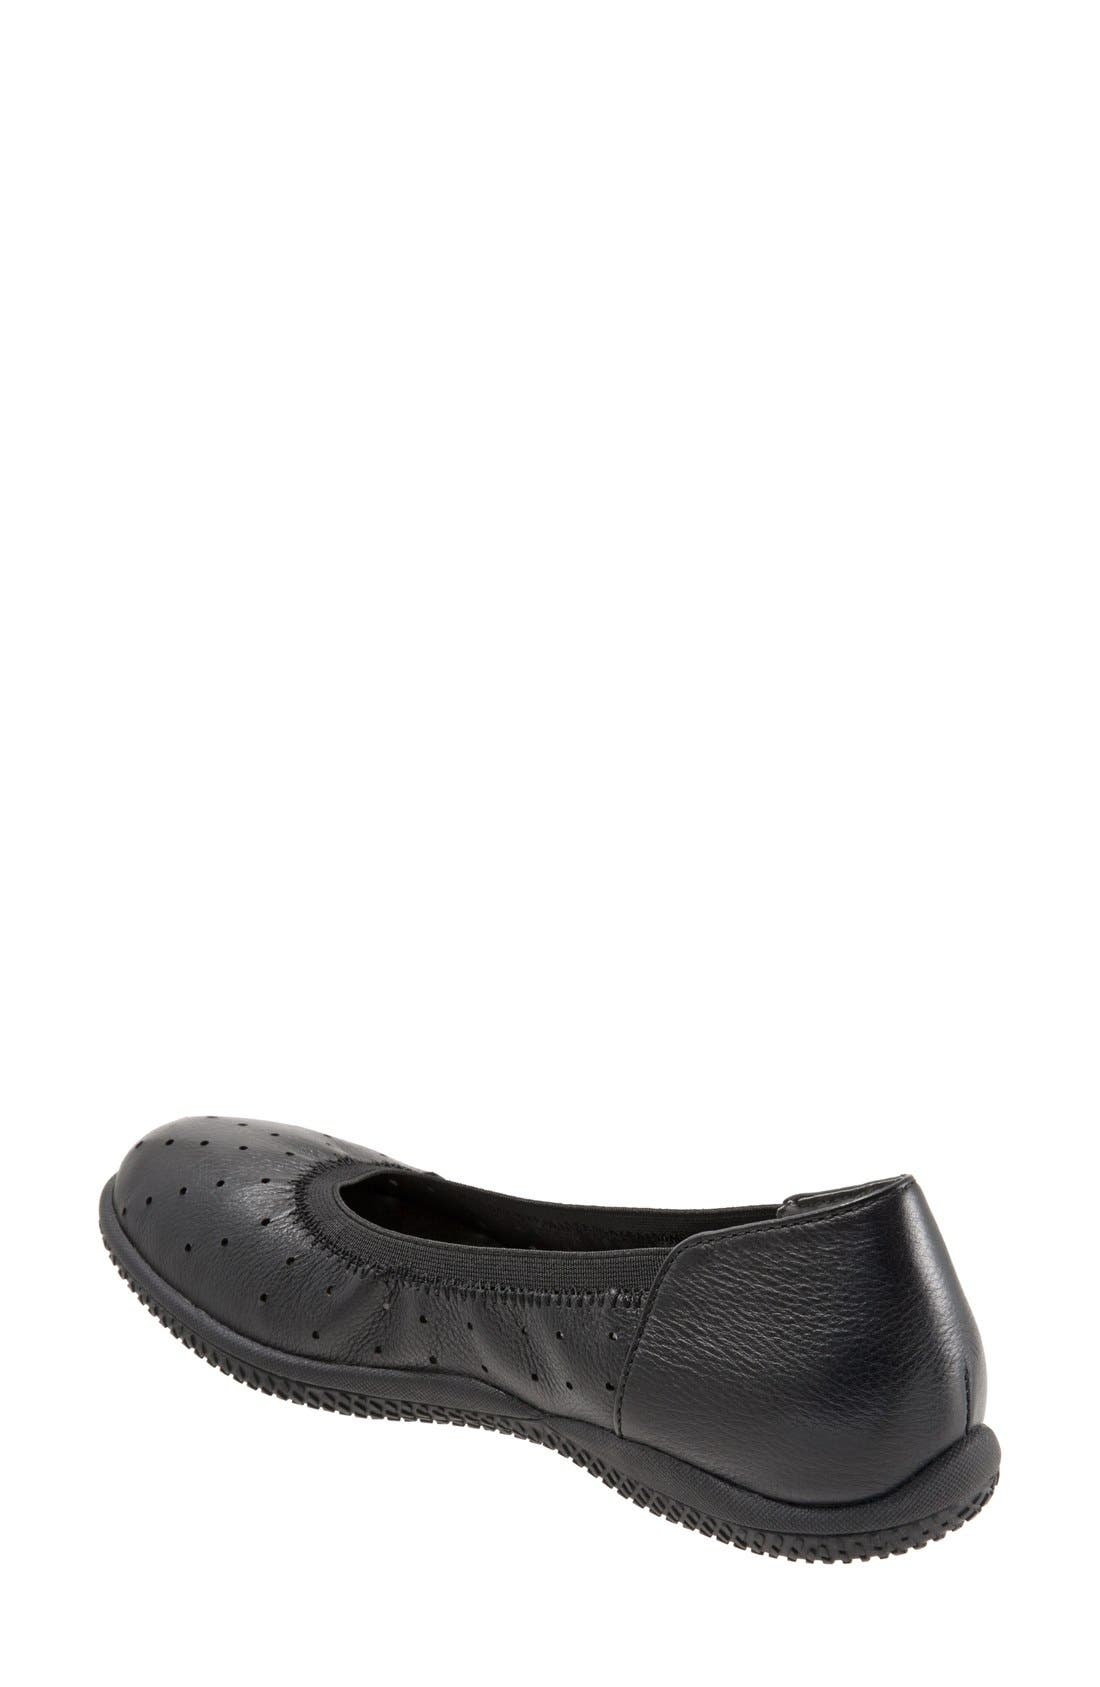 'Hampshire' Dot Perforated Ballet Flat,                             Alternate thumbnail 3, color,                             BLACK LEATHER